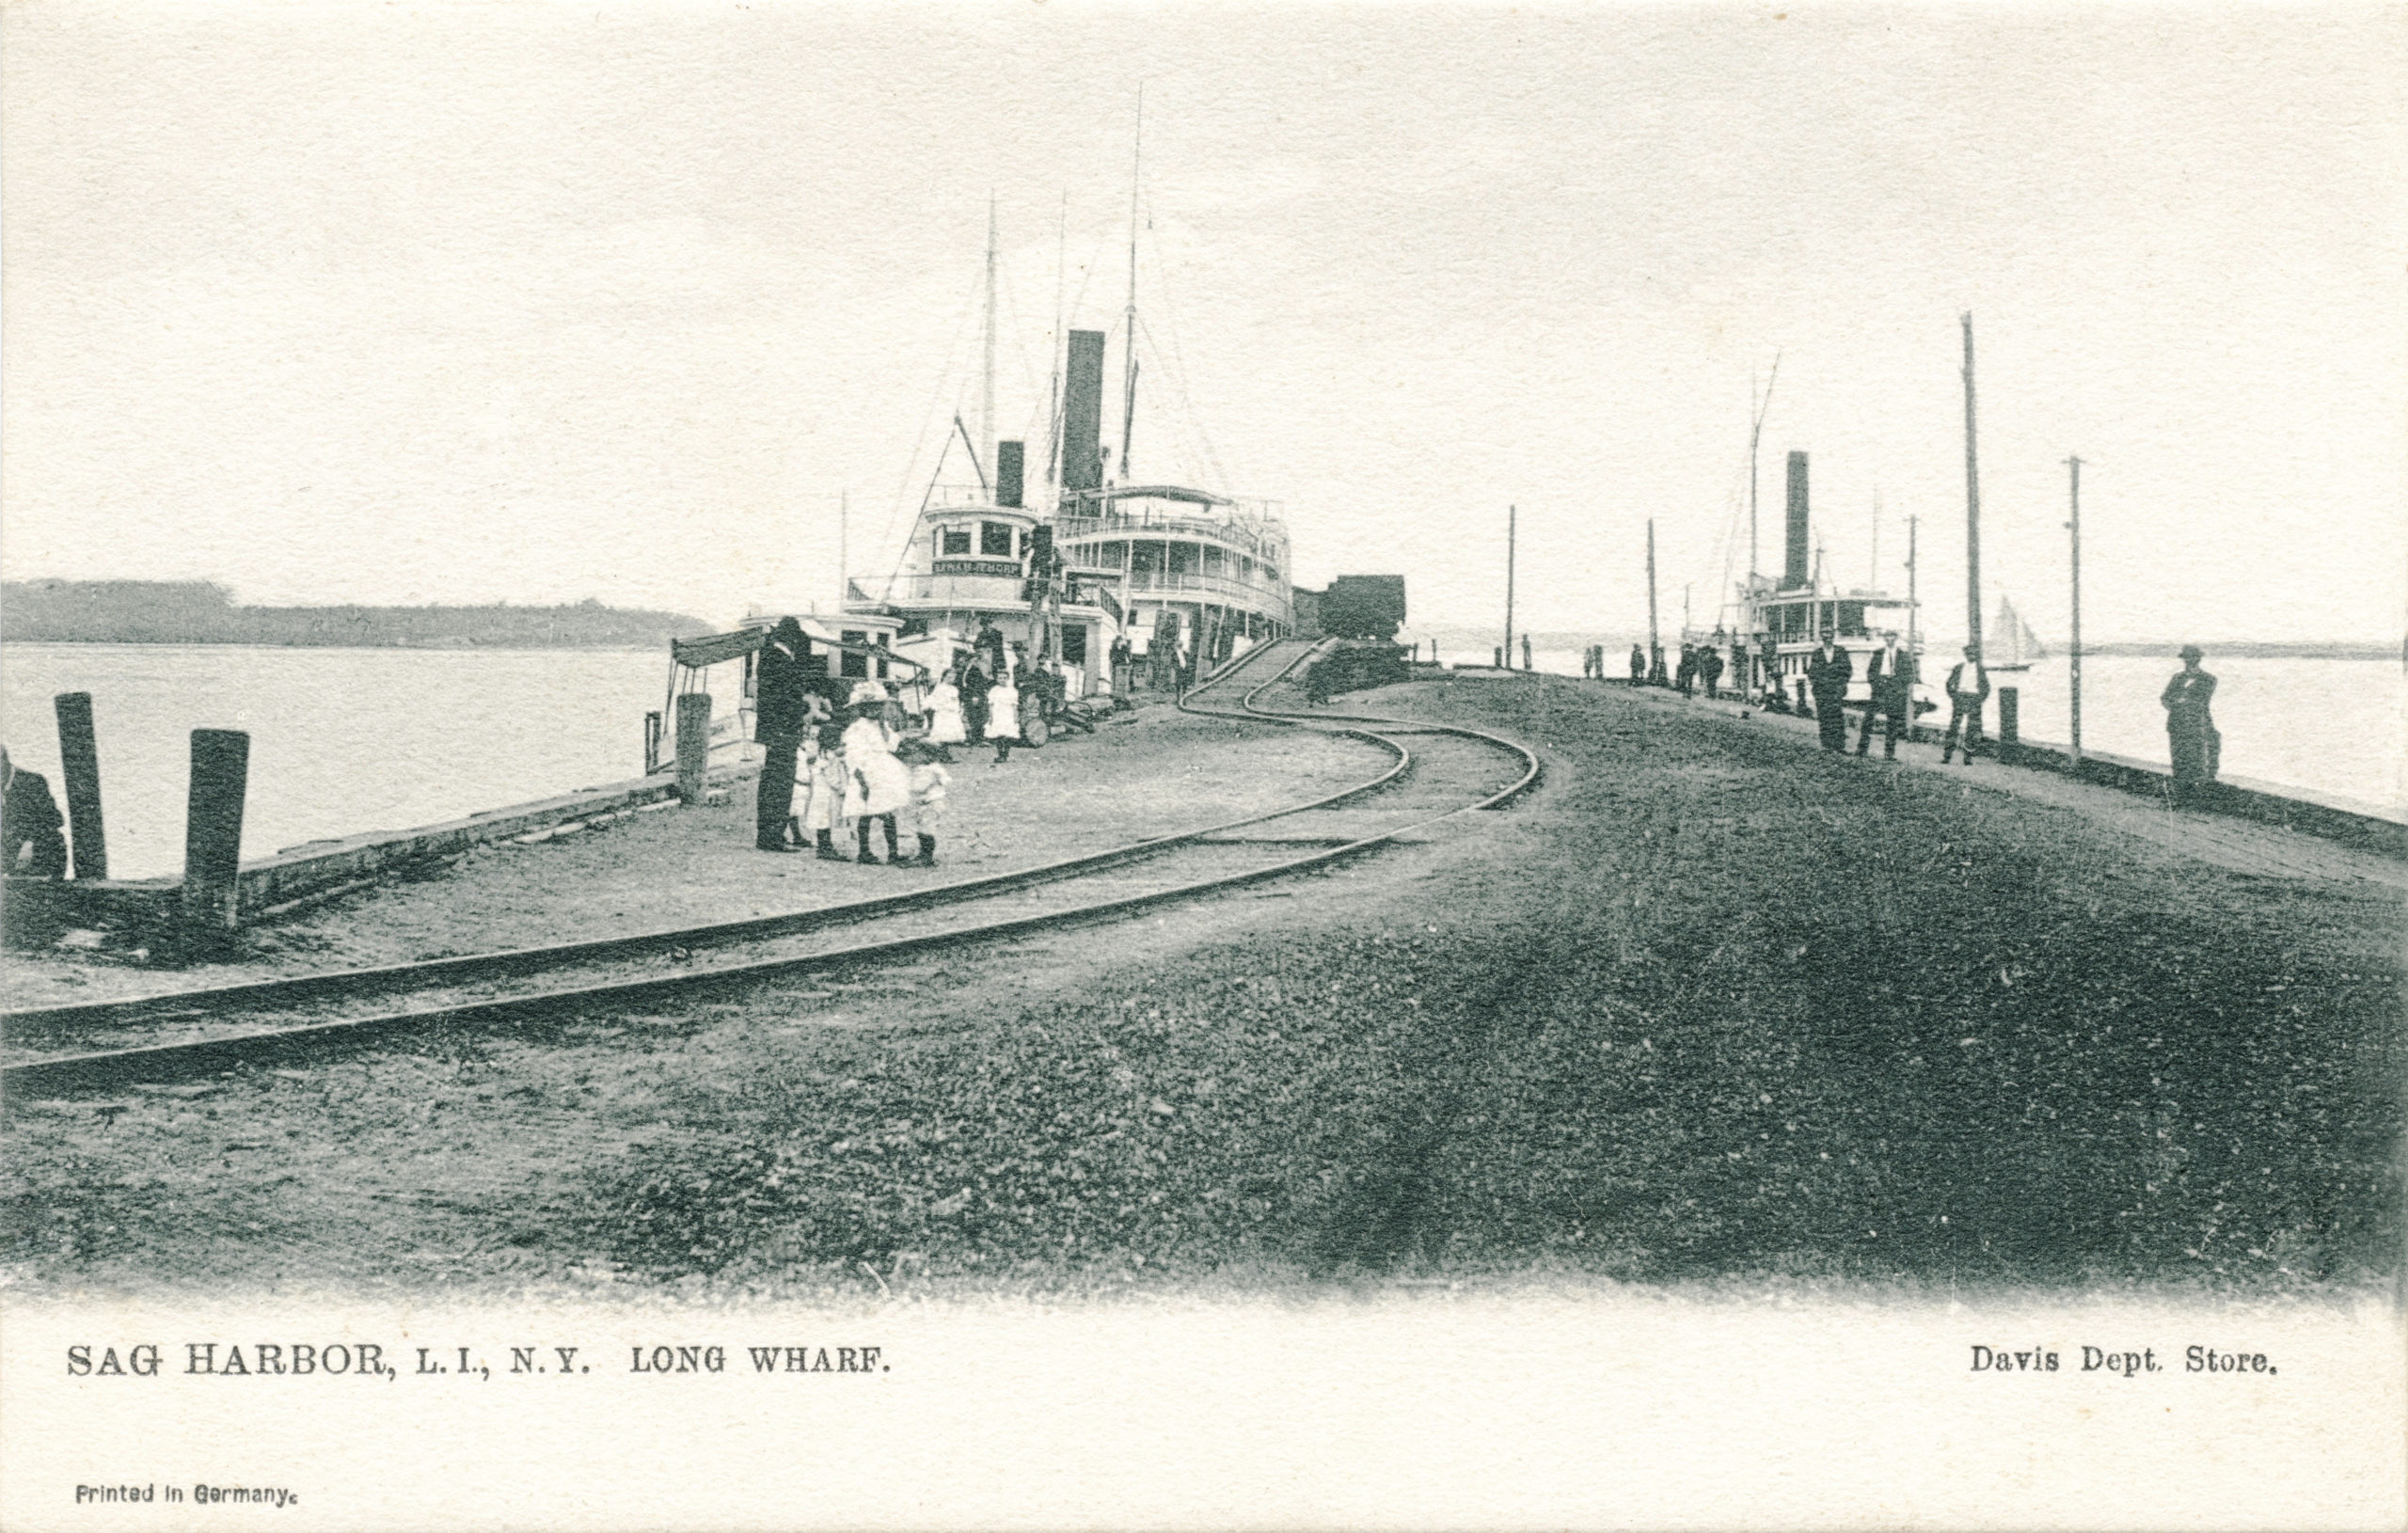 A postcard, circa 1910, shows the railway going onto Long Wharf at just about the same spot where the rail section was found by workers excavating.